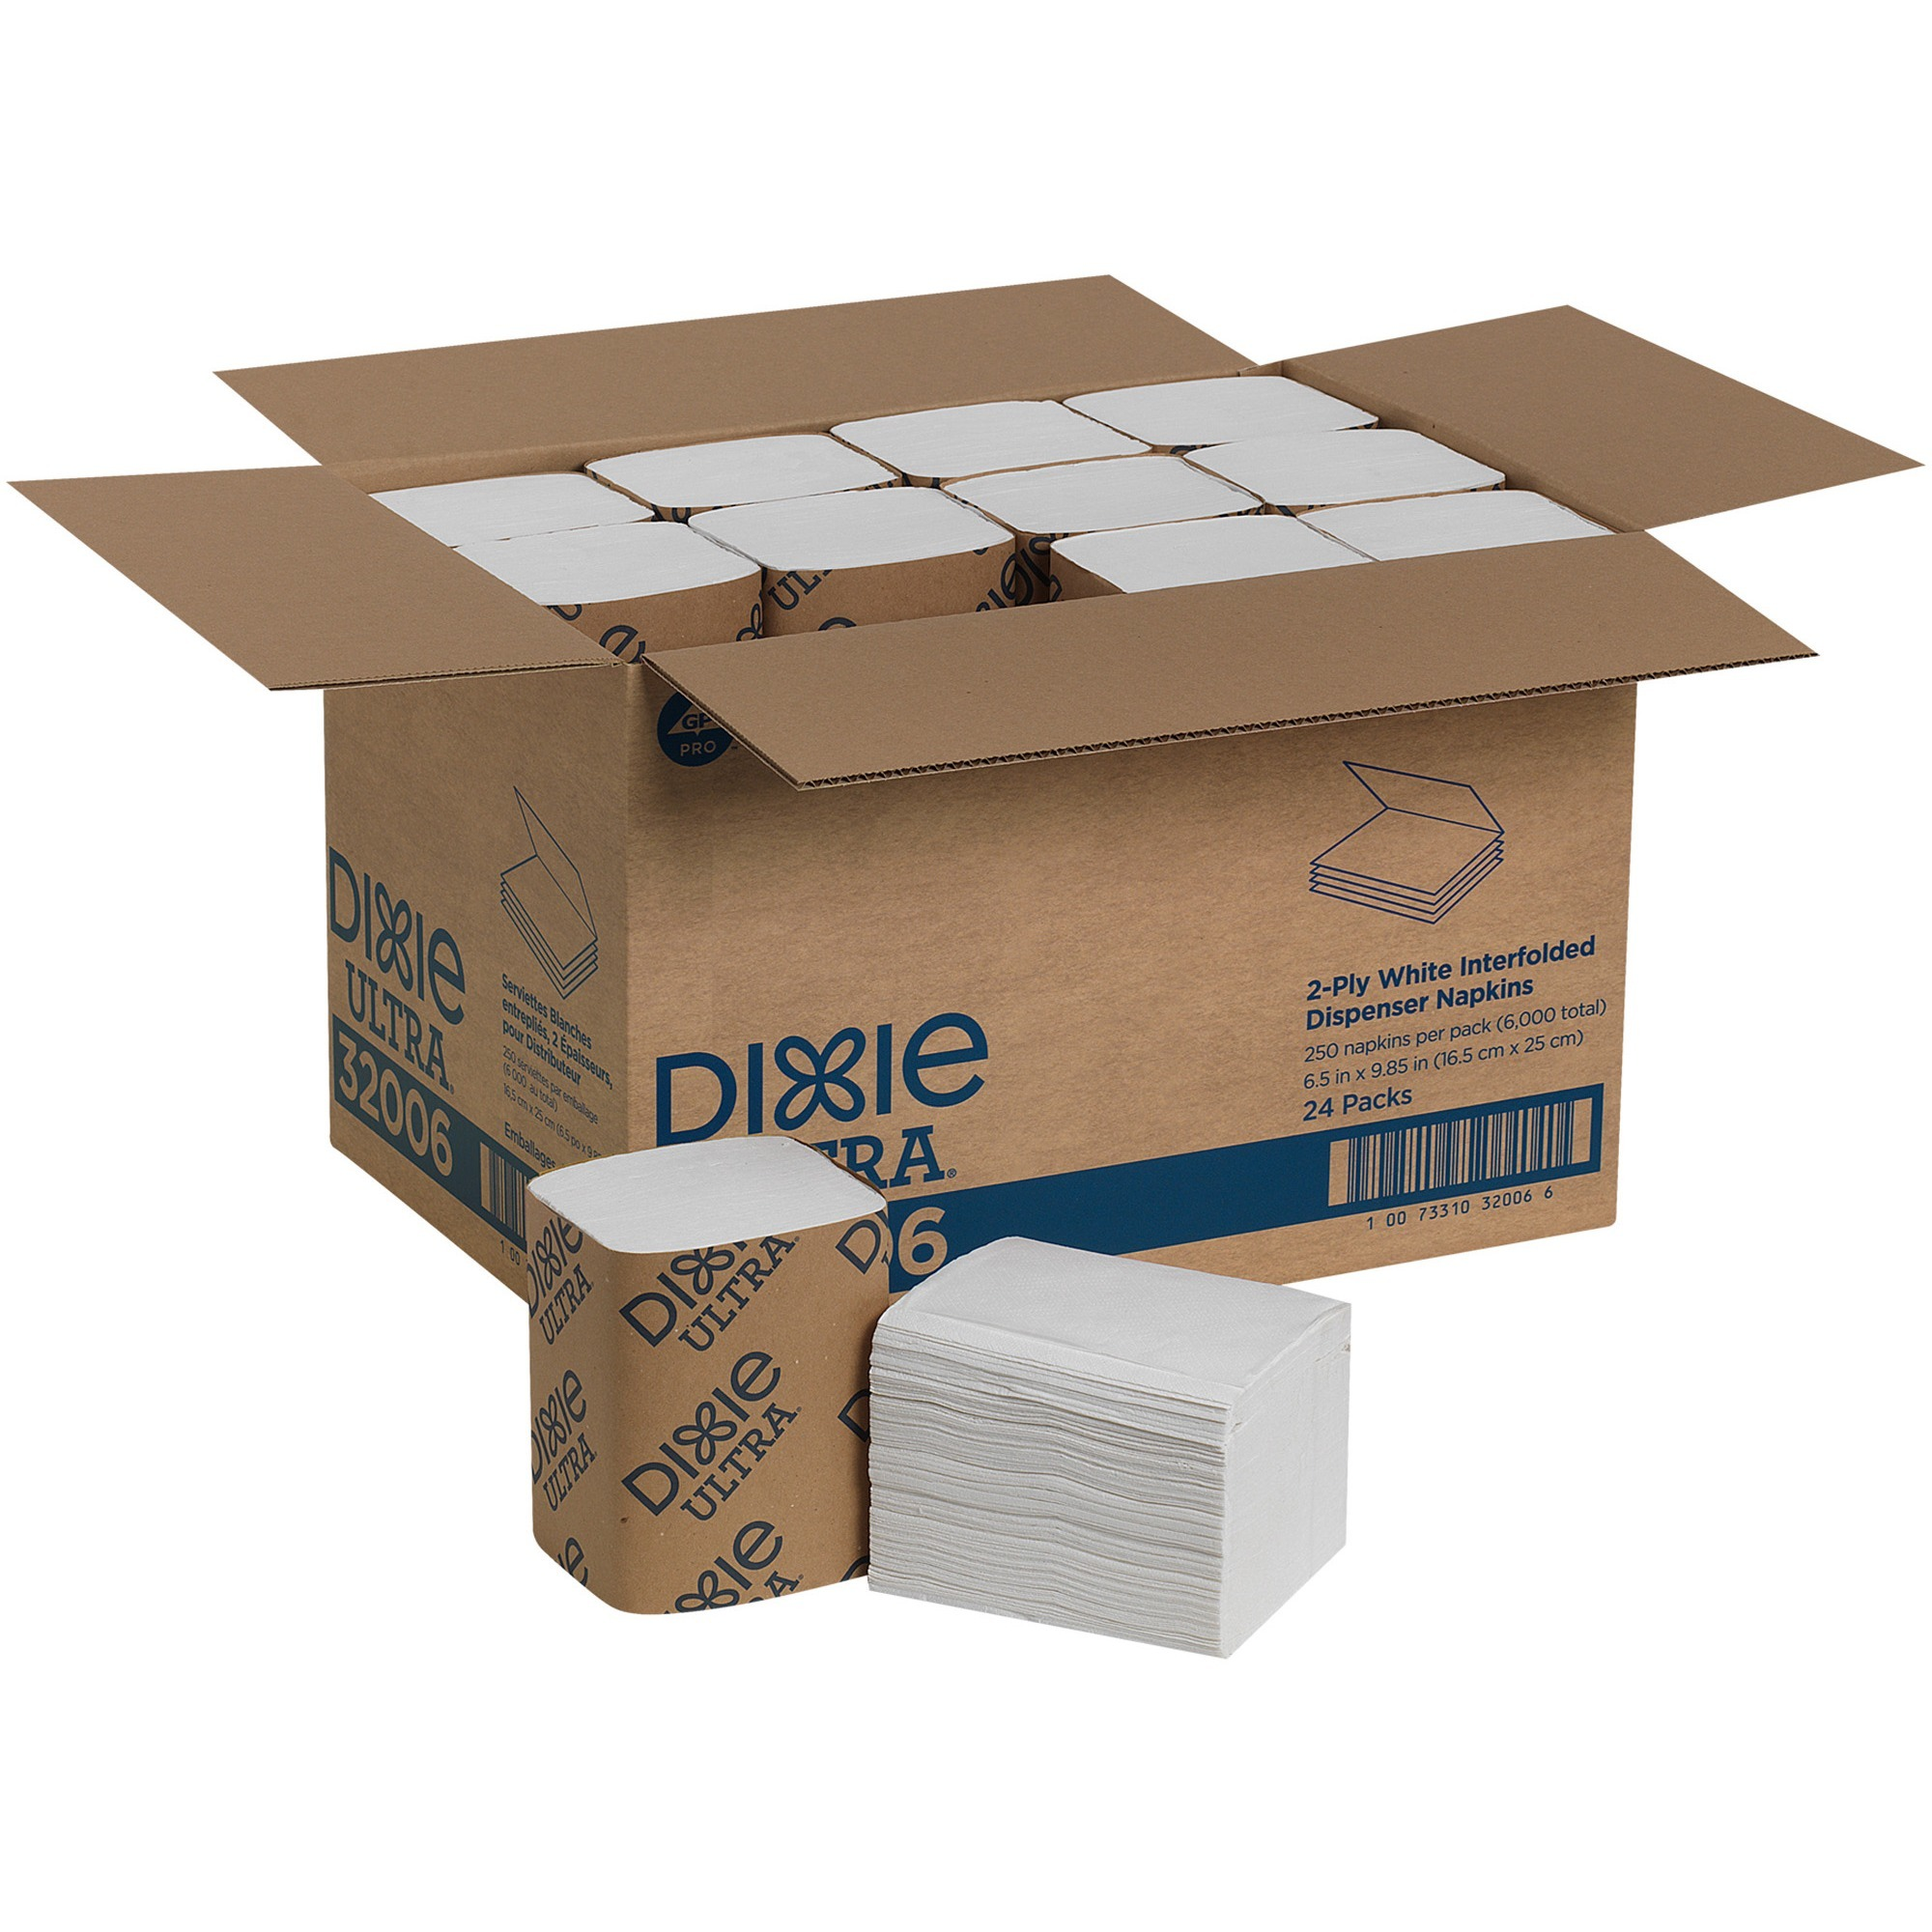 Dixie Ultra&reg, GPC32006, Interfold Napkin Dispenser Refill, 6000 / Carton, White